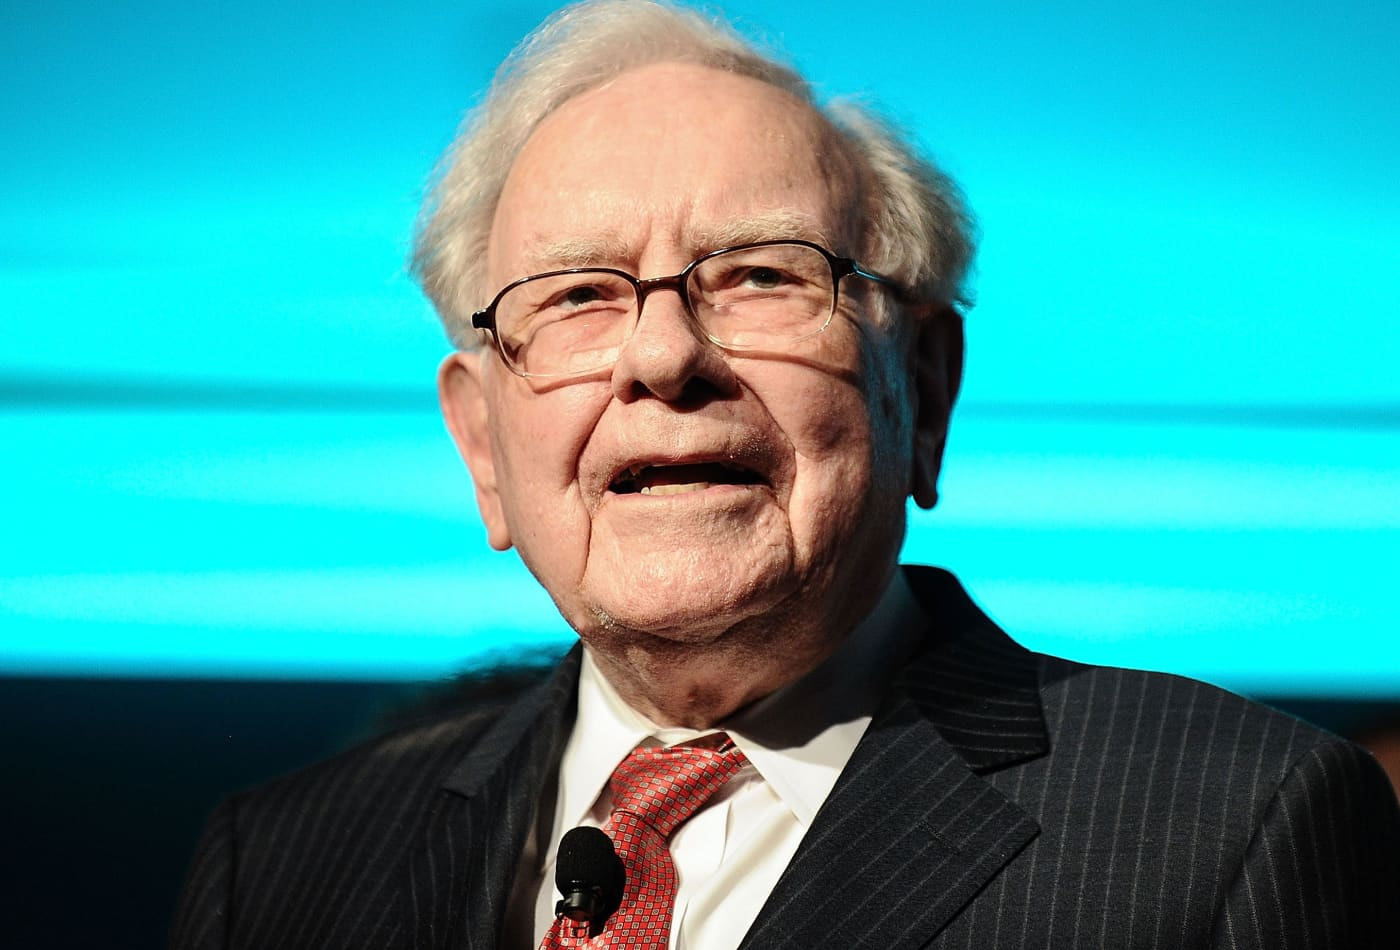 Warren Buffett recommends a simple exercise before you buy any stock: Write down your why